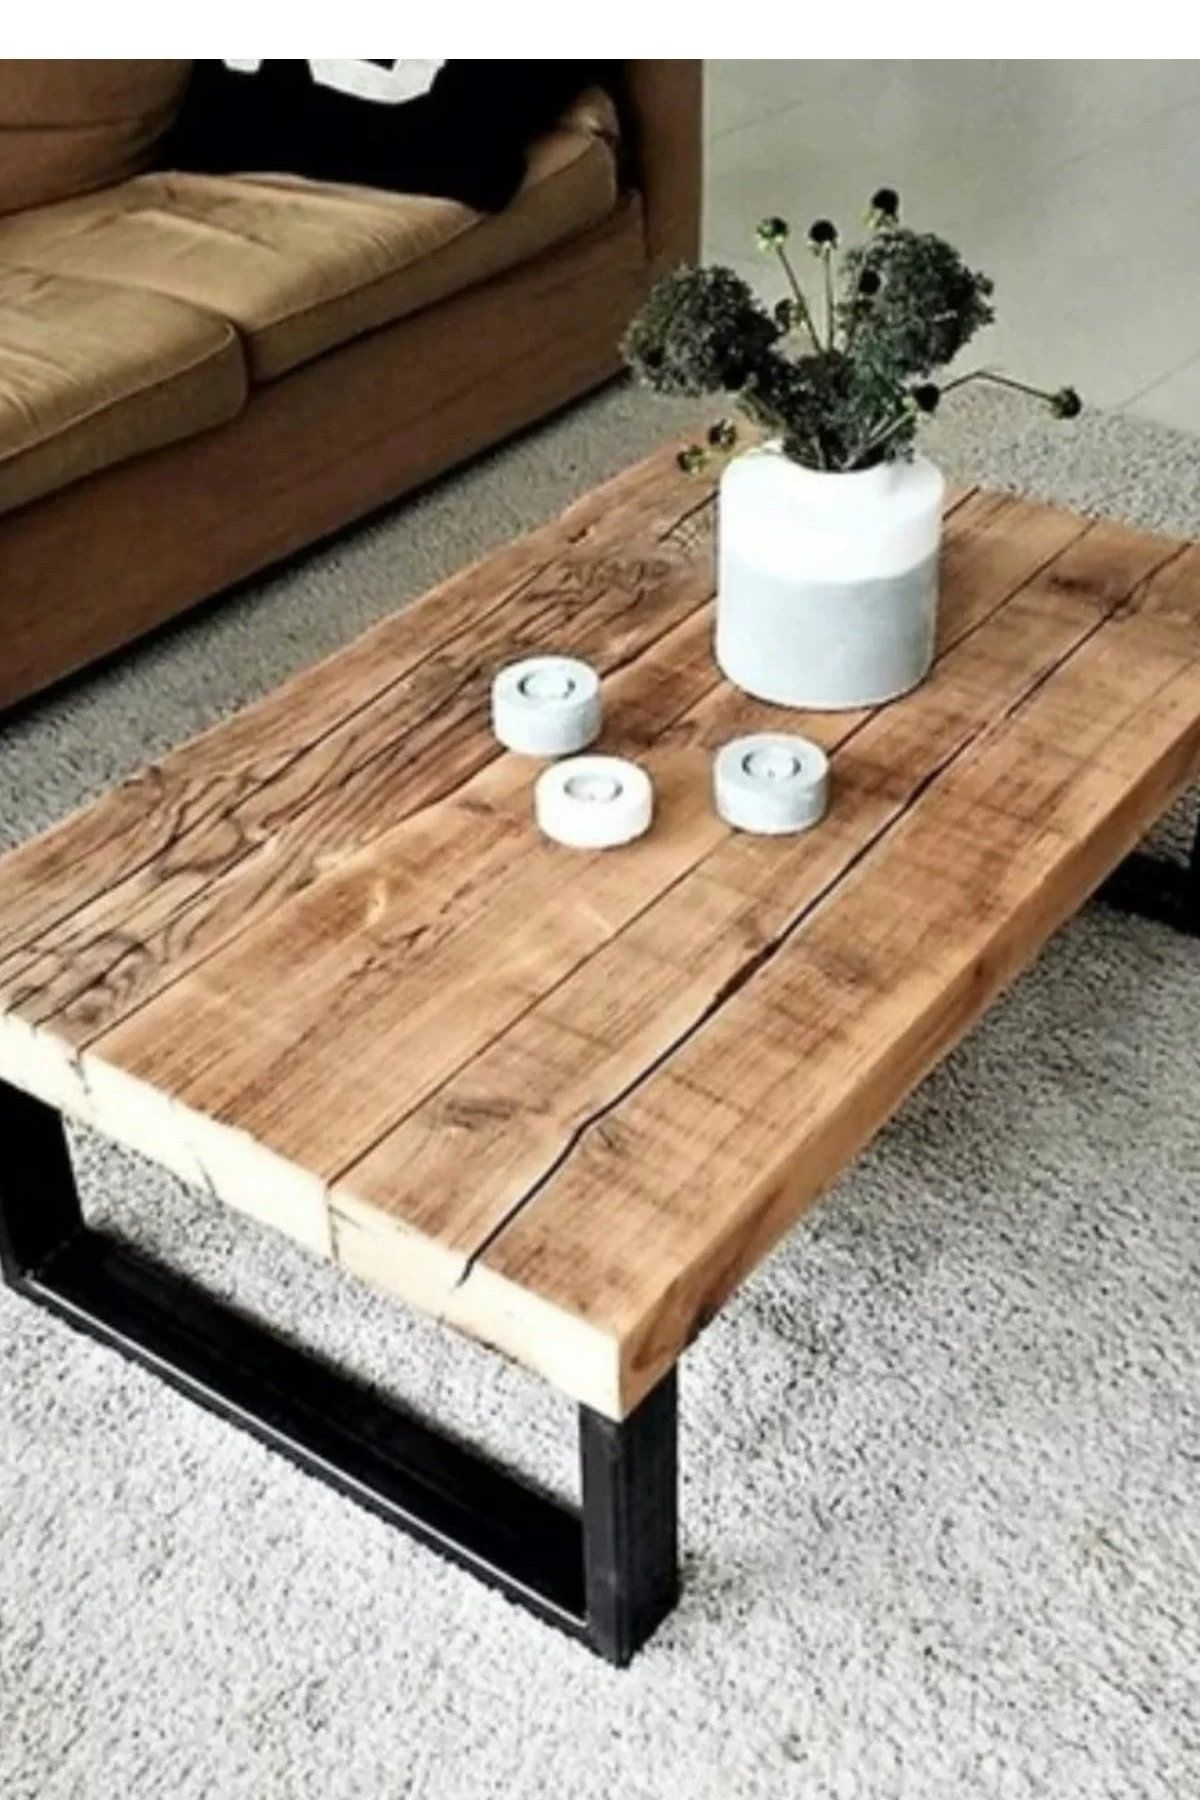 Wooden Coffee Table Coffee Table Middle Table Natural Wood Etsy In 2021 Diy Furniture Table Coffee Table Plans Coffee Table [ 1800 x 1200 Pixel ]